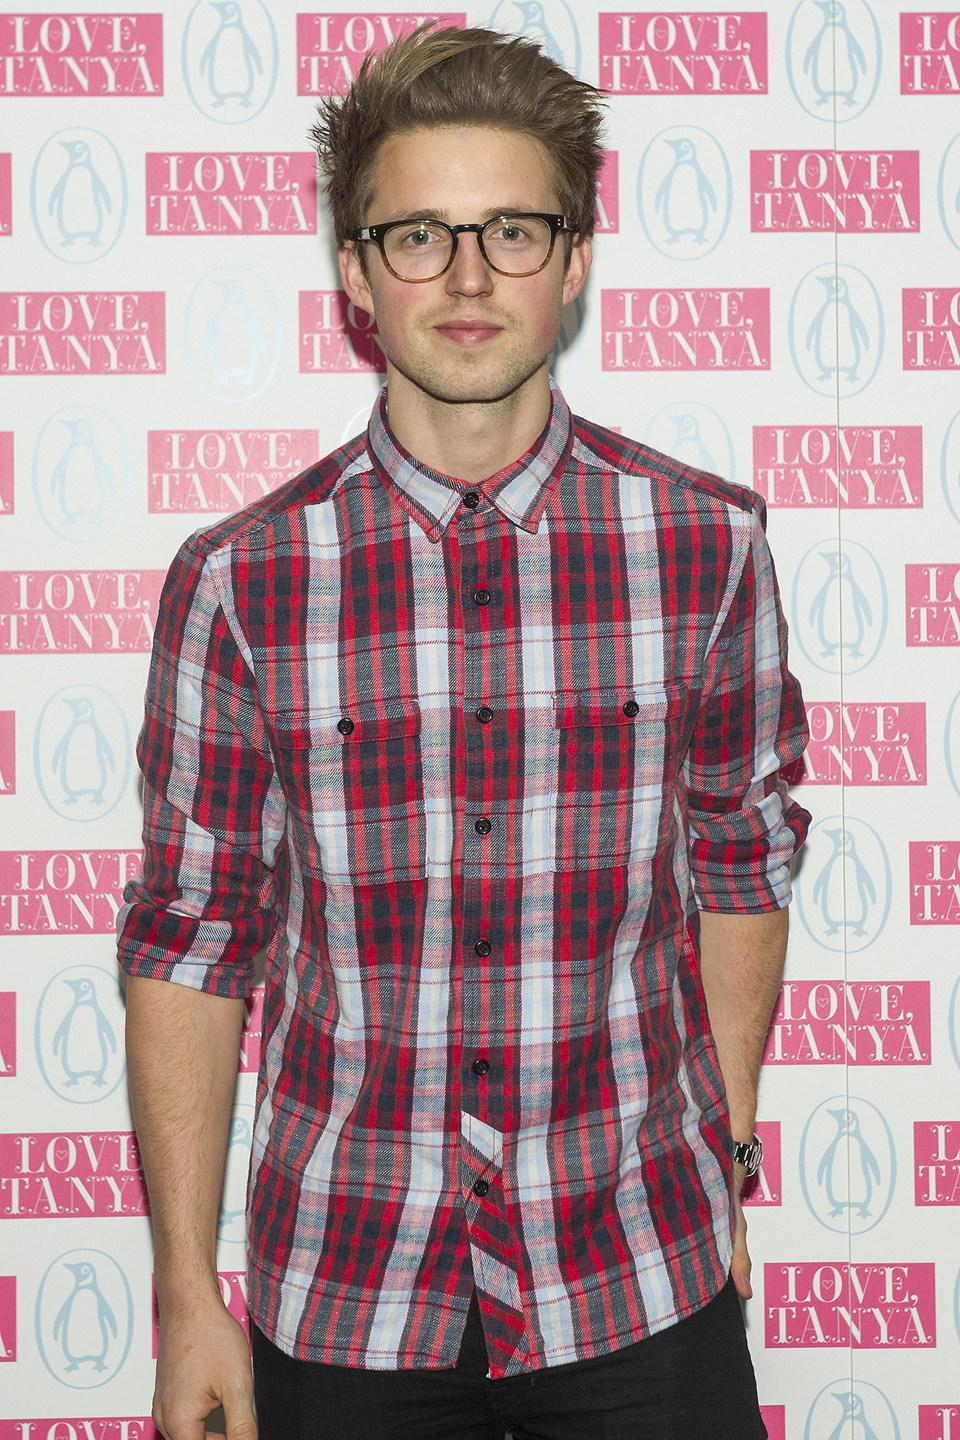 Find out what the weirdest thing @MarcusButler has ever received from a fan is: http://t.co/Rr9Z50hnsH http://t.co/UrlLSMmrKH